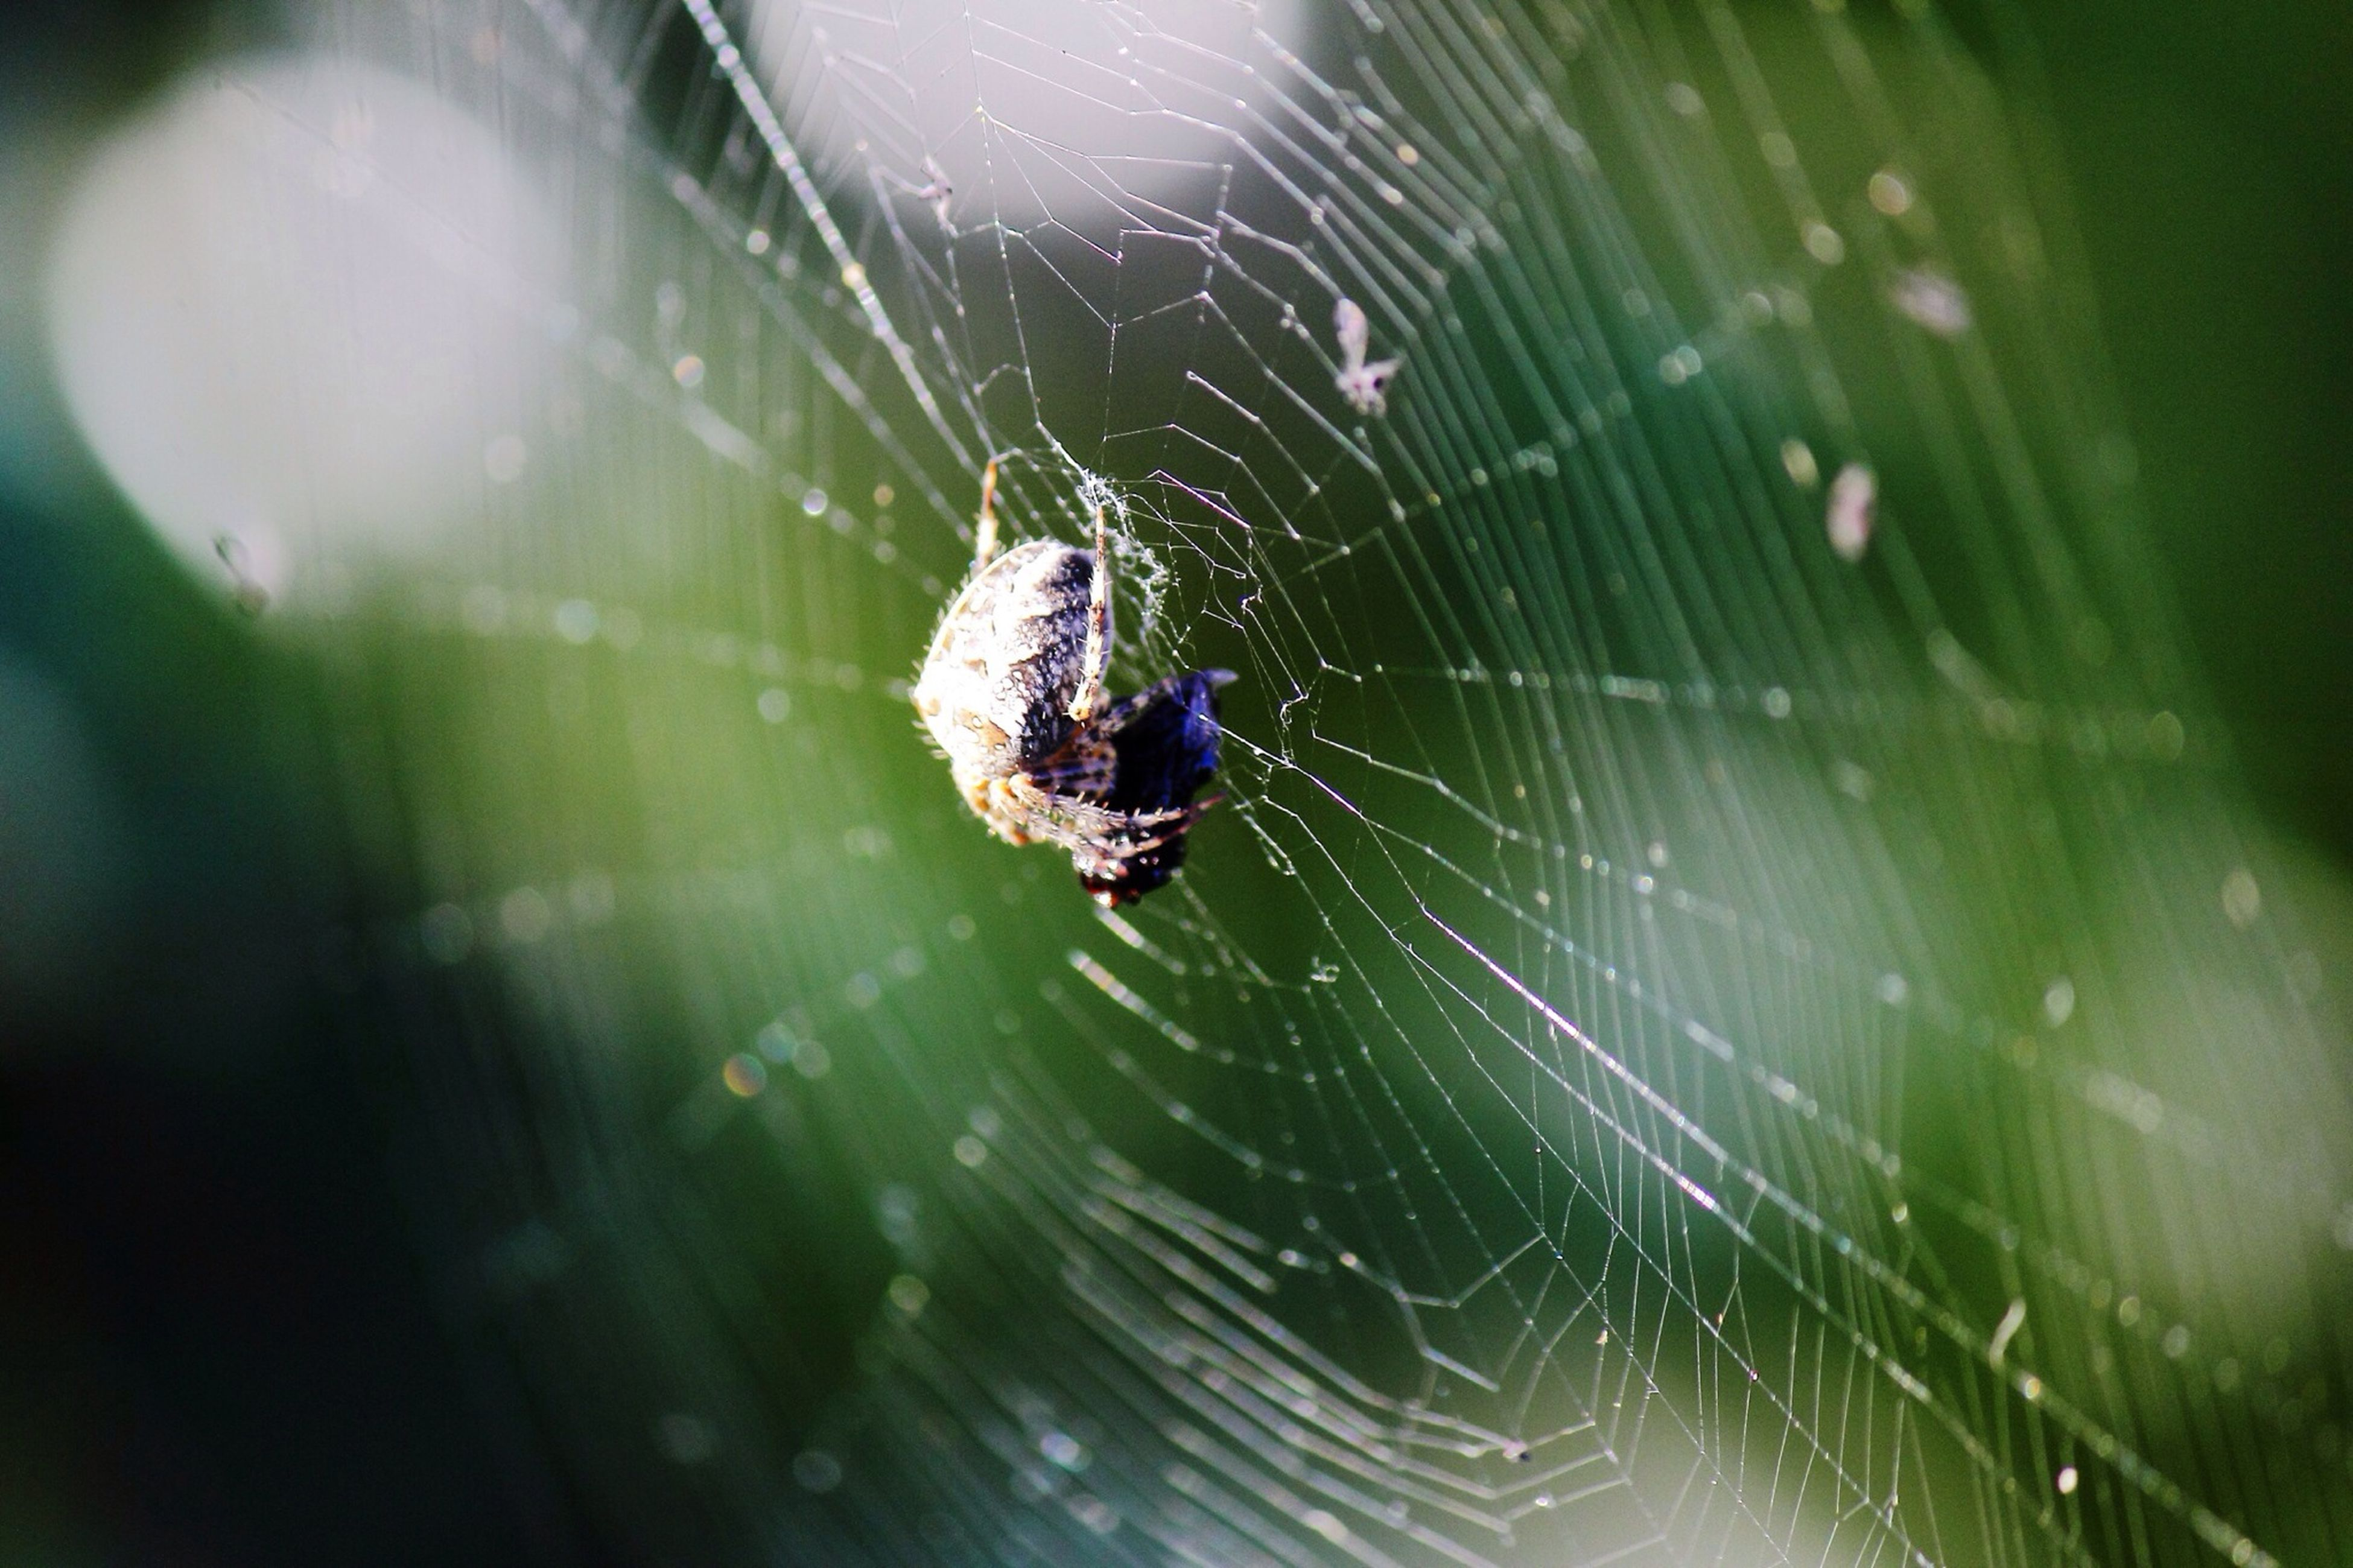 spider web, animal themes, one animal, spider, insect, animals in the wild, wildlife, focus on foreground, web, close-up, spinning, selective focus, arachnid, drop, nature, fragility, full length, outdoors, no people, day